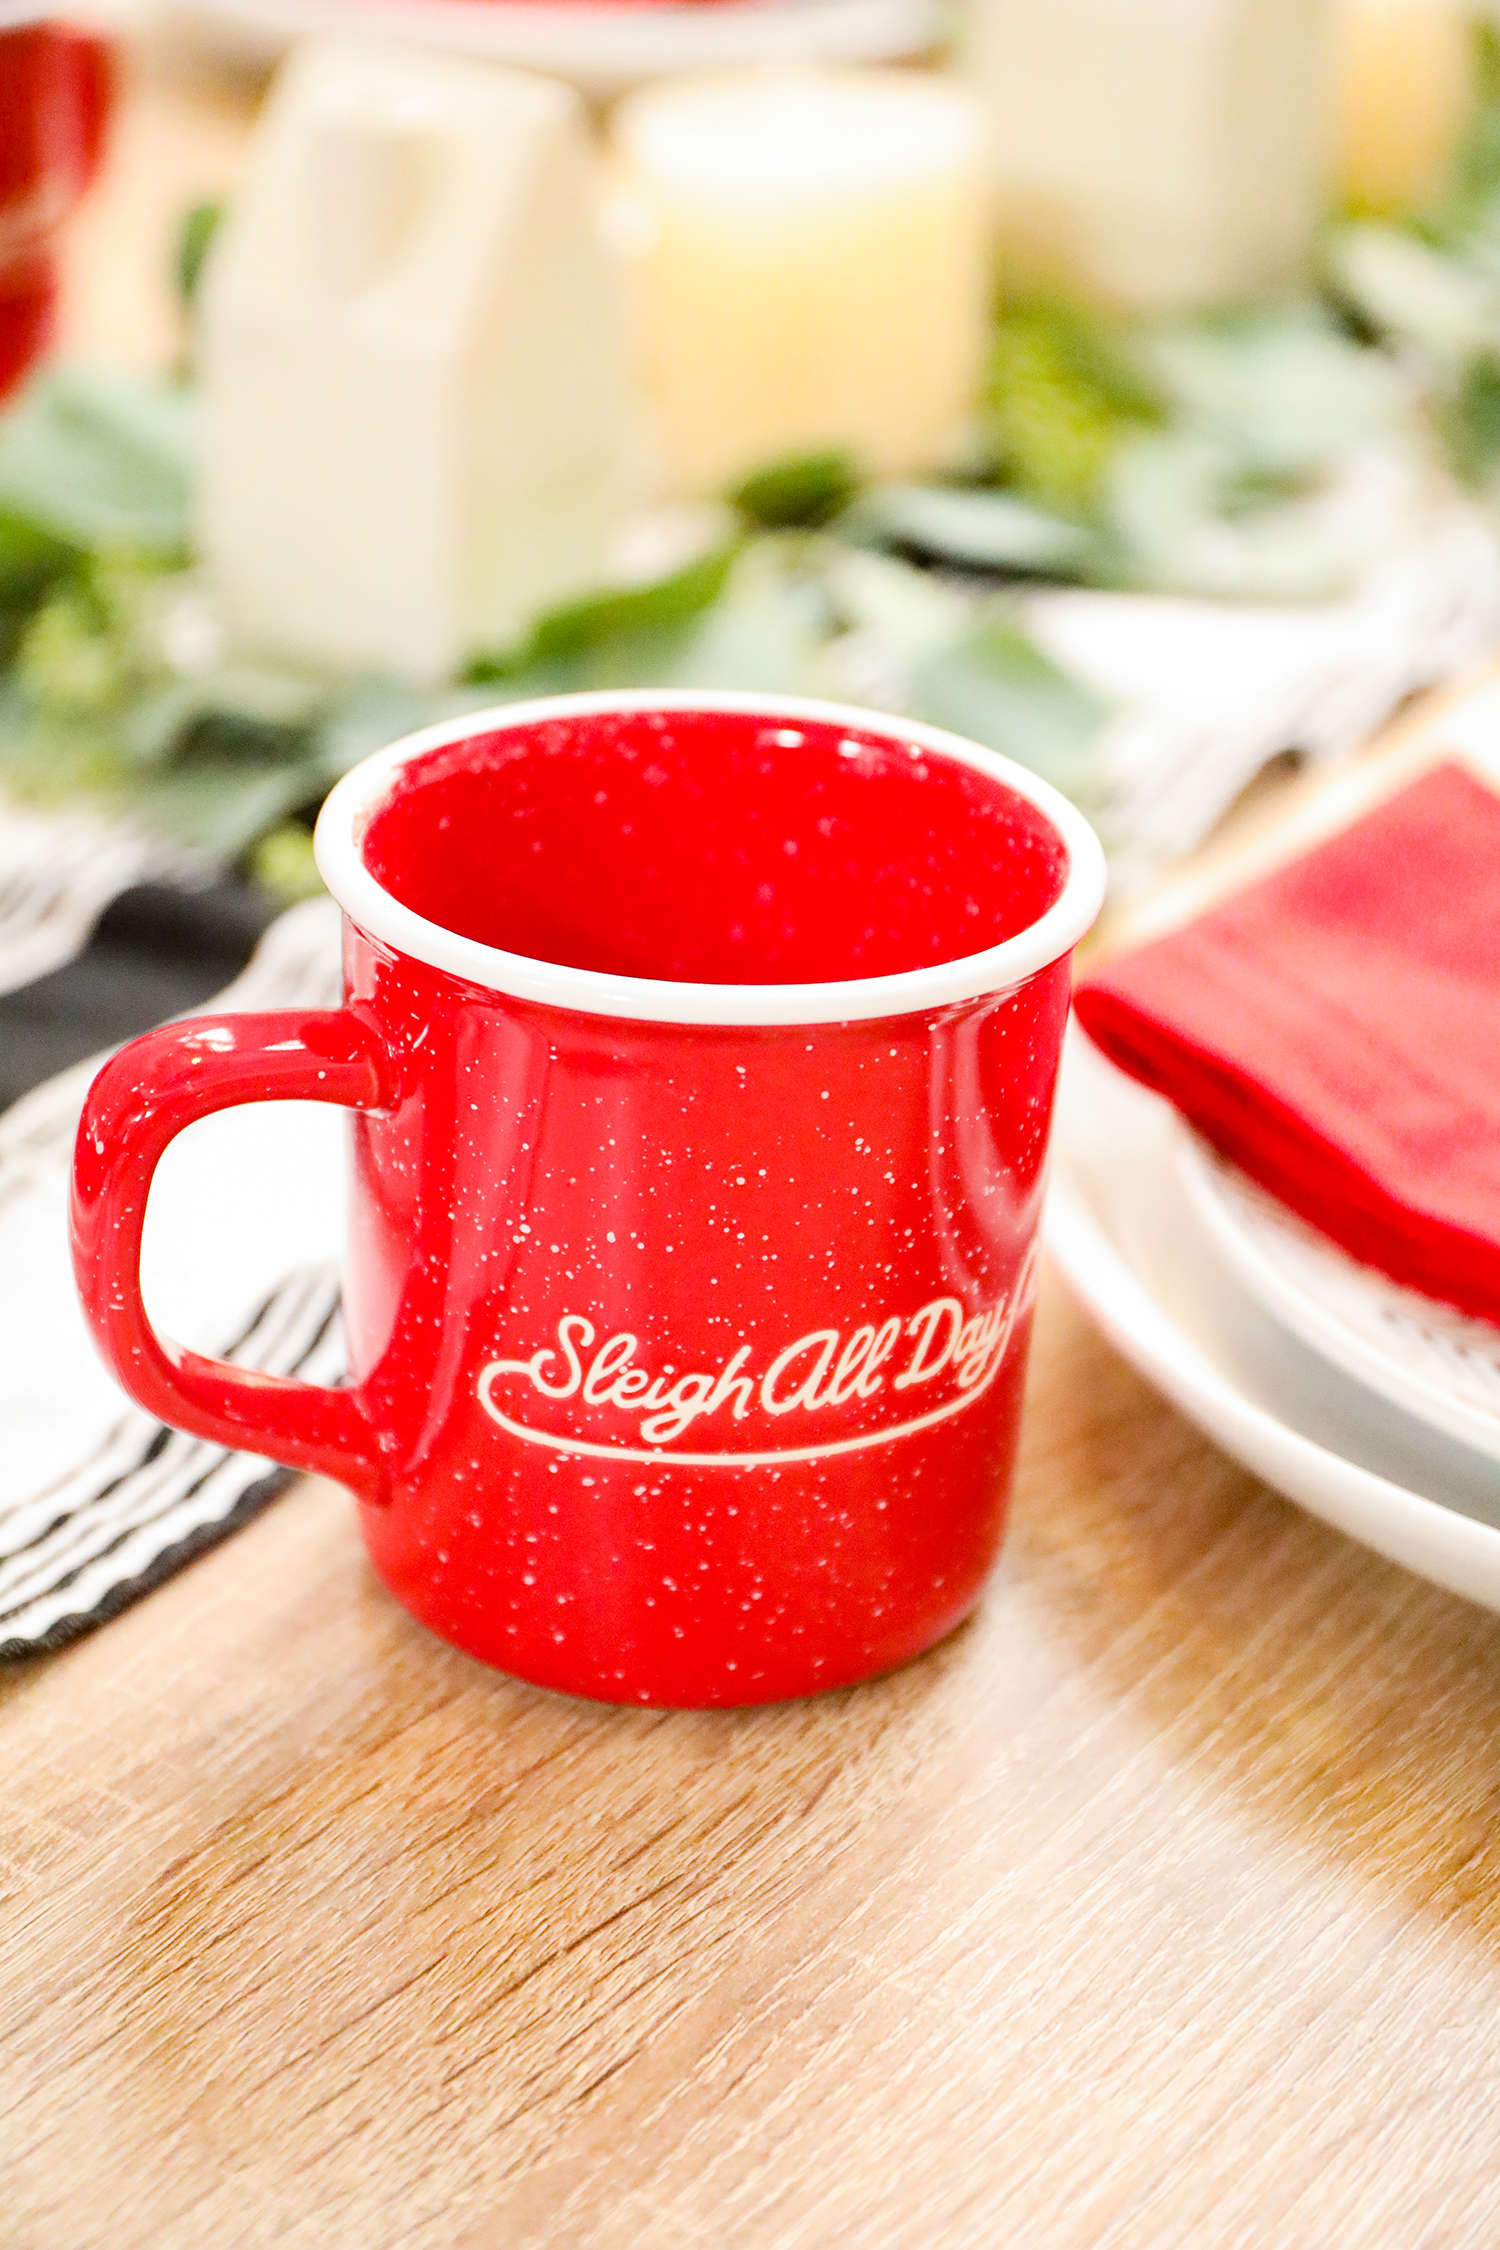 Do you collect Christmas mugs? I love this red cup!